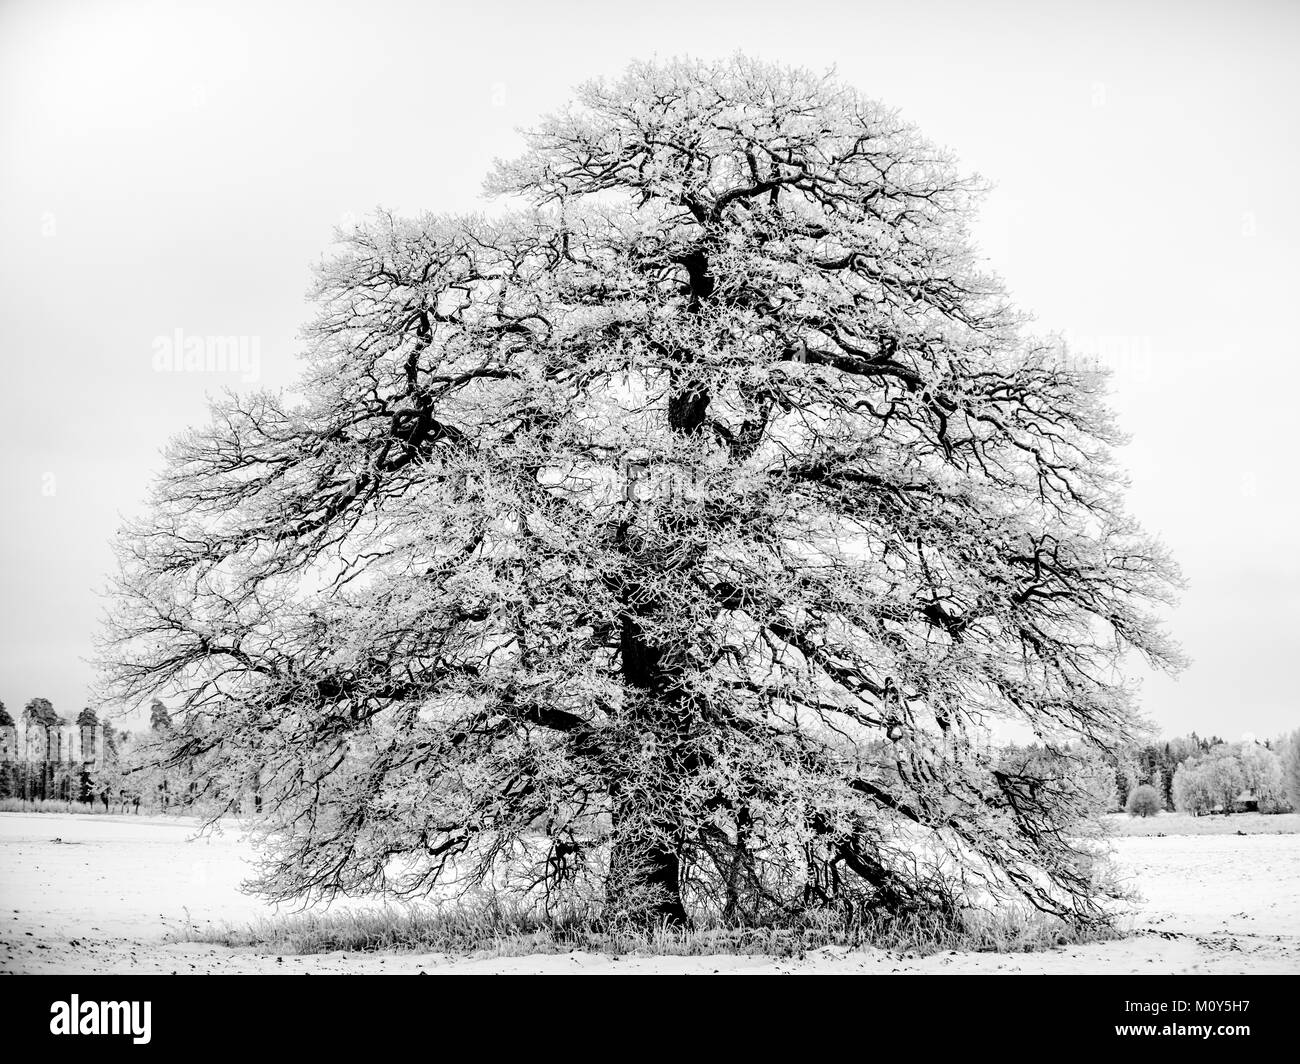 The Frosty Grand Old Oak a january day in Uppland, Sweden in B/W - Stock Image